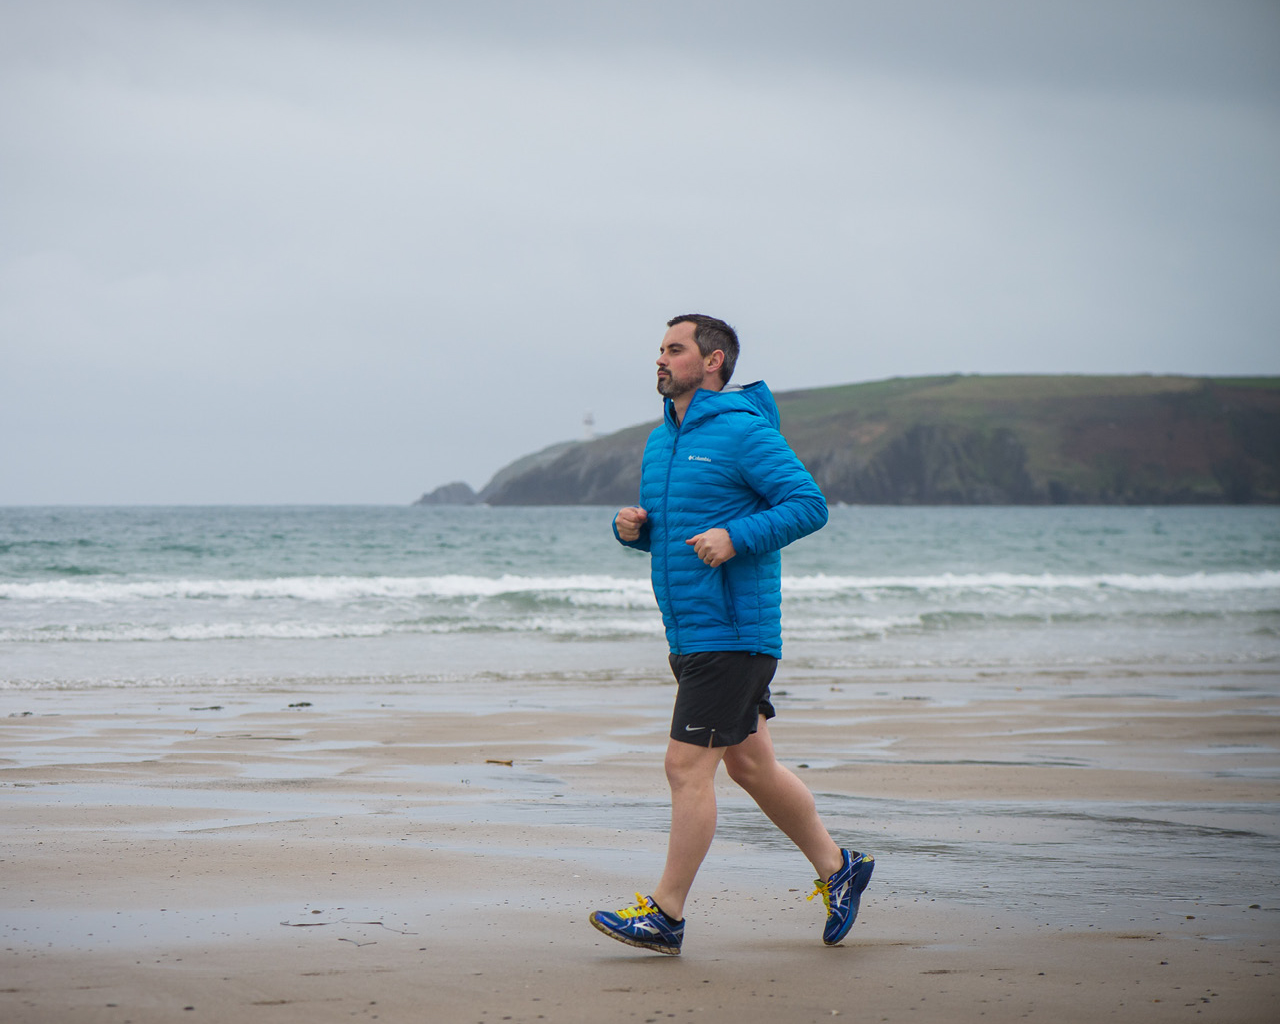 Karl Henry in a blue top, running on a beach